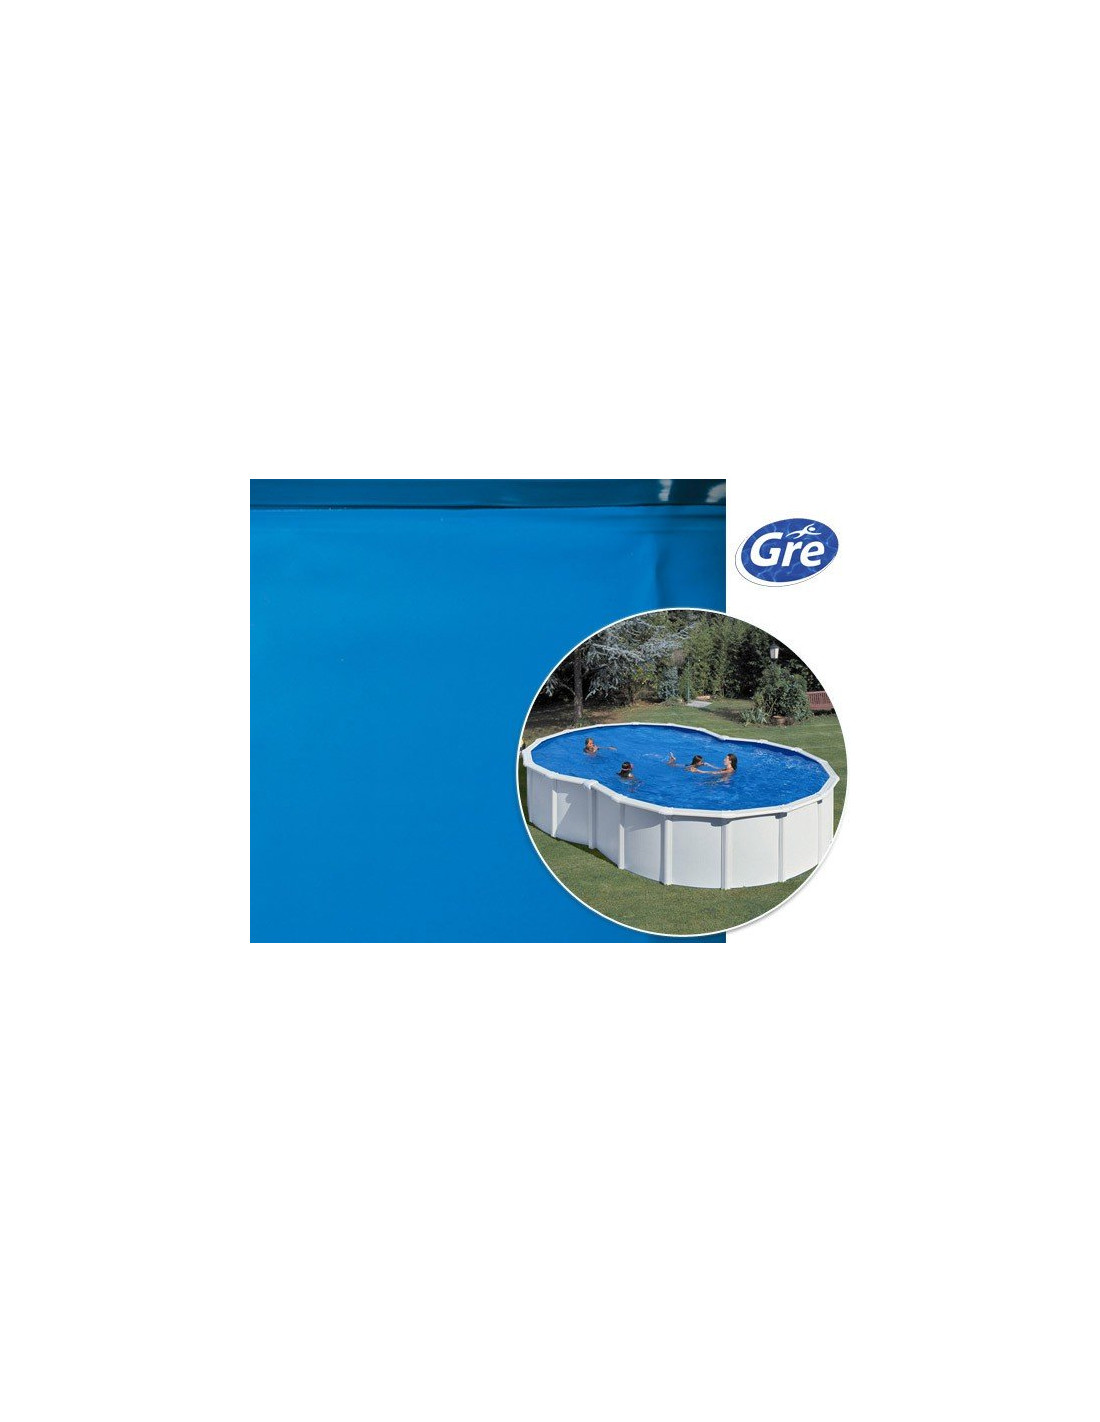 Liner piscine hors sol en huit gre pool coloris bleu for Commander liner piscine